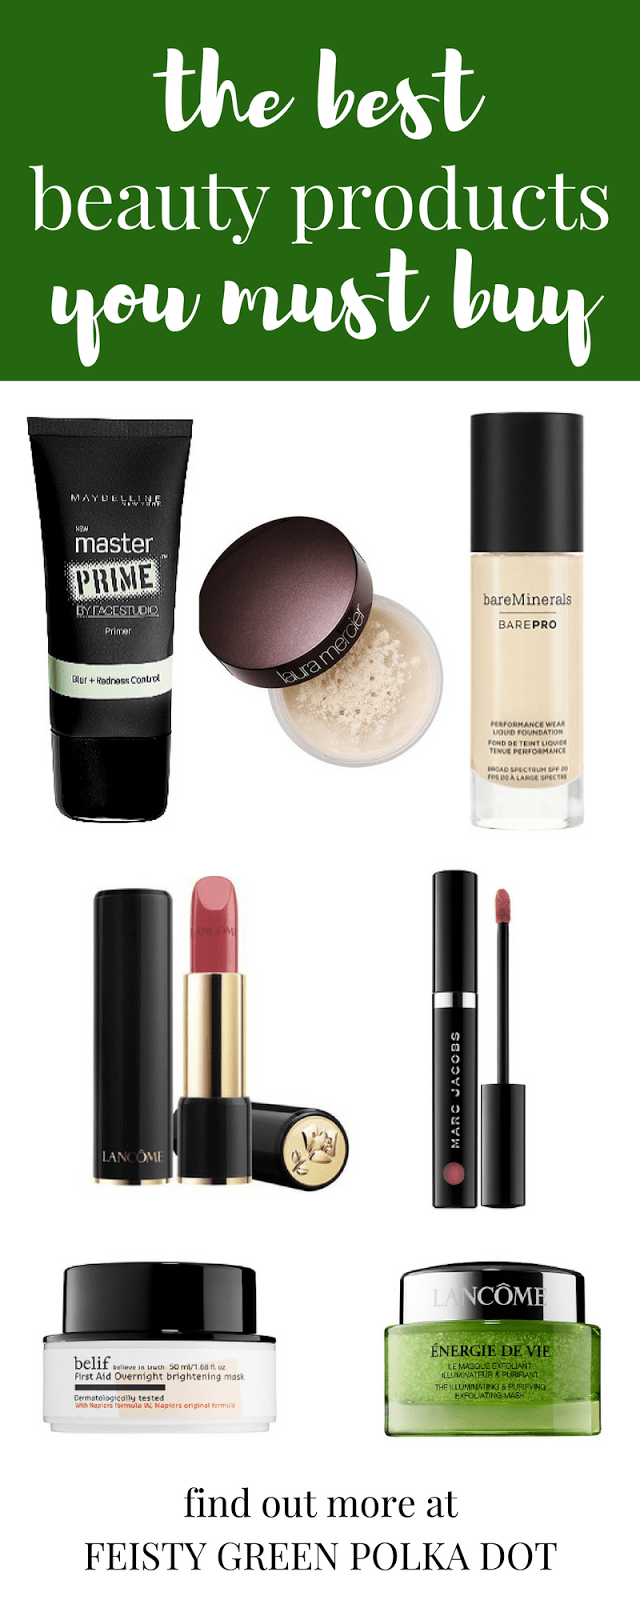 Check out this list of the best beauty products you must buy plus a few you might want to avoid. #bestandworst #beauty #bareminerals #lancome #belif